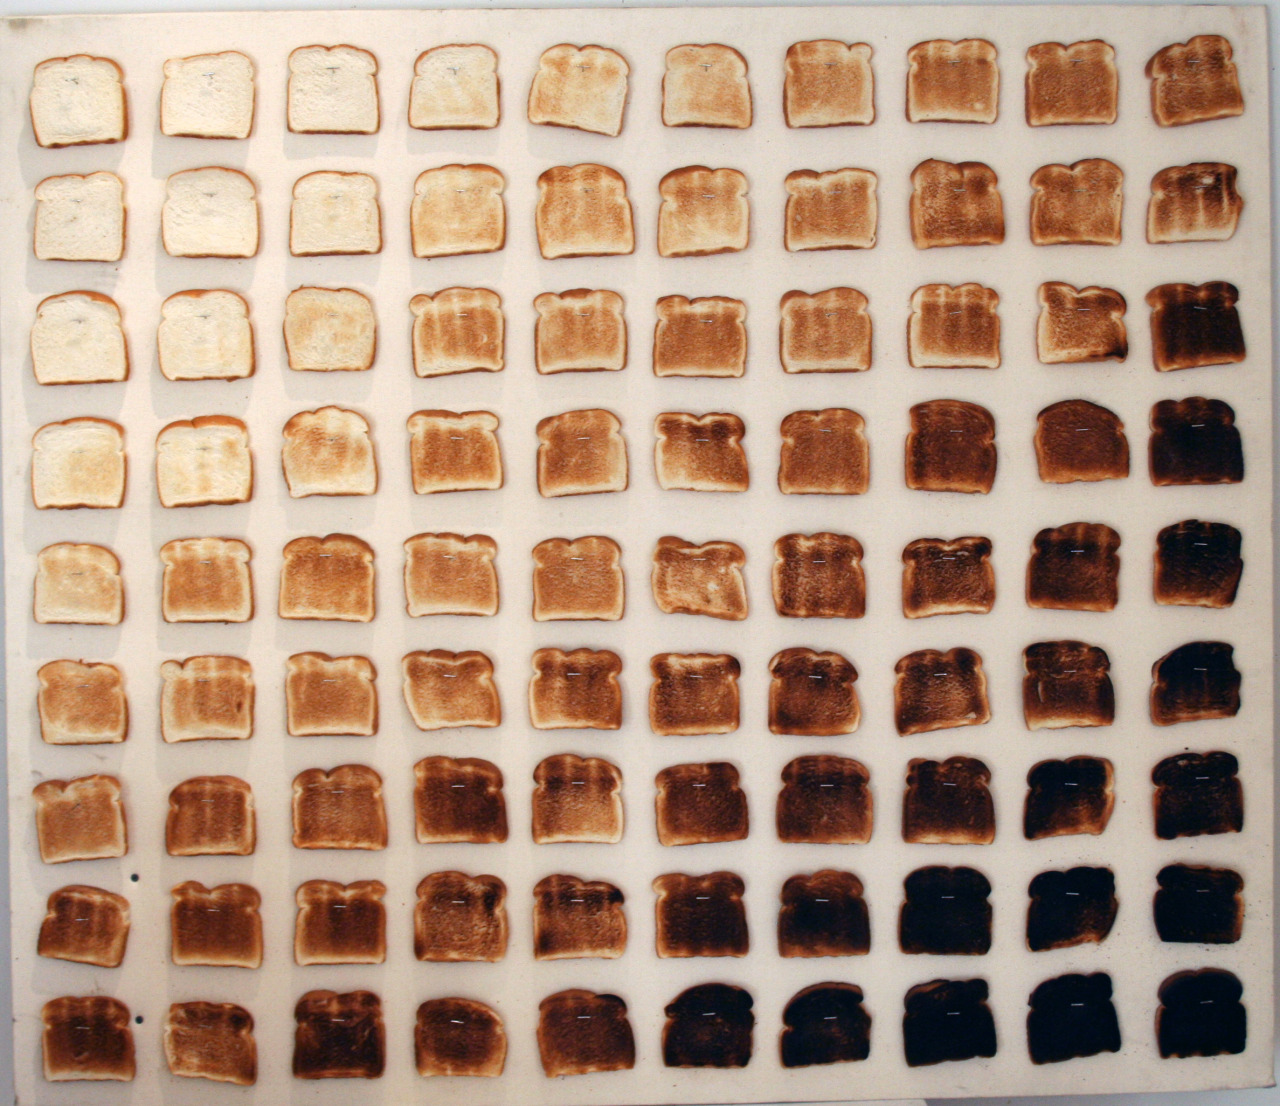 vbhsfdjavgd:  Why is this so cool?   50 shades of tost